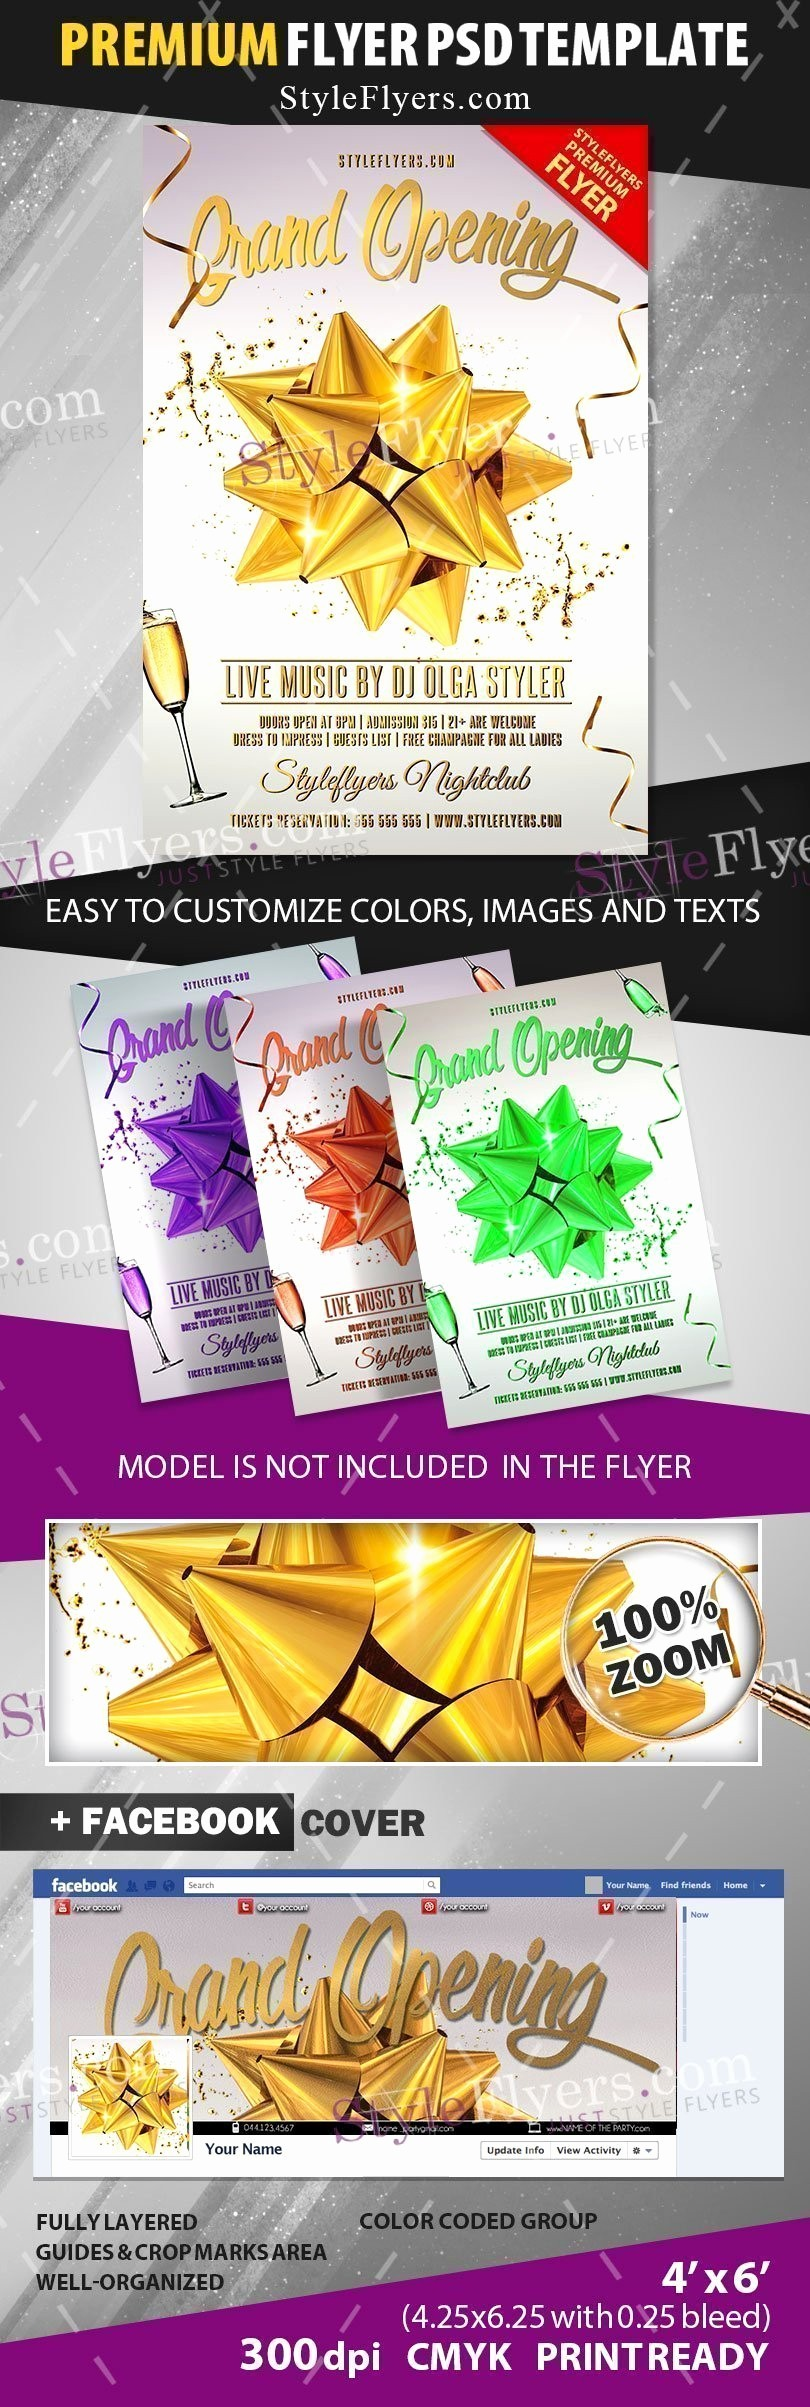 Free Grand Opening Flyer Template Best Of Grand Opening Psd Flyer Template Styleflyers